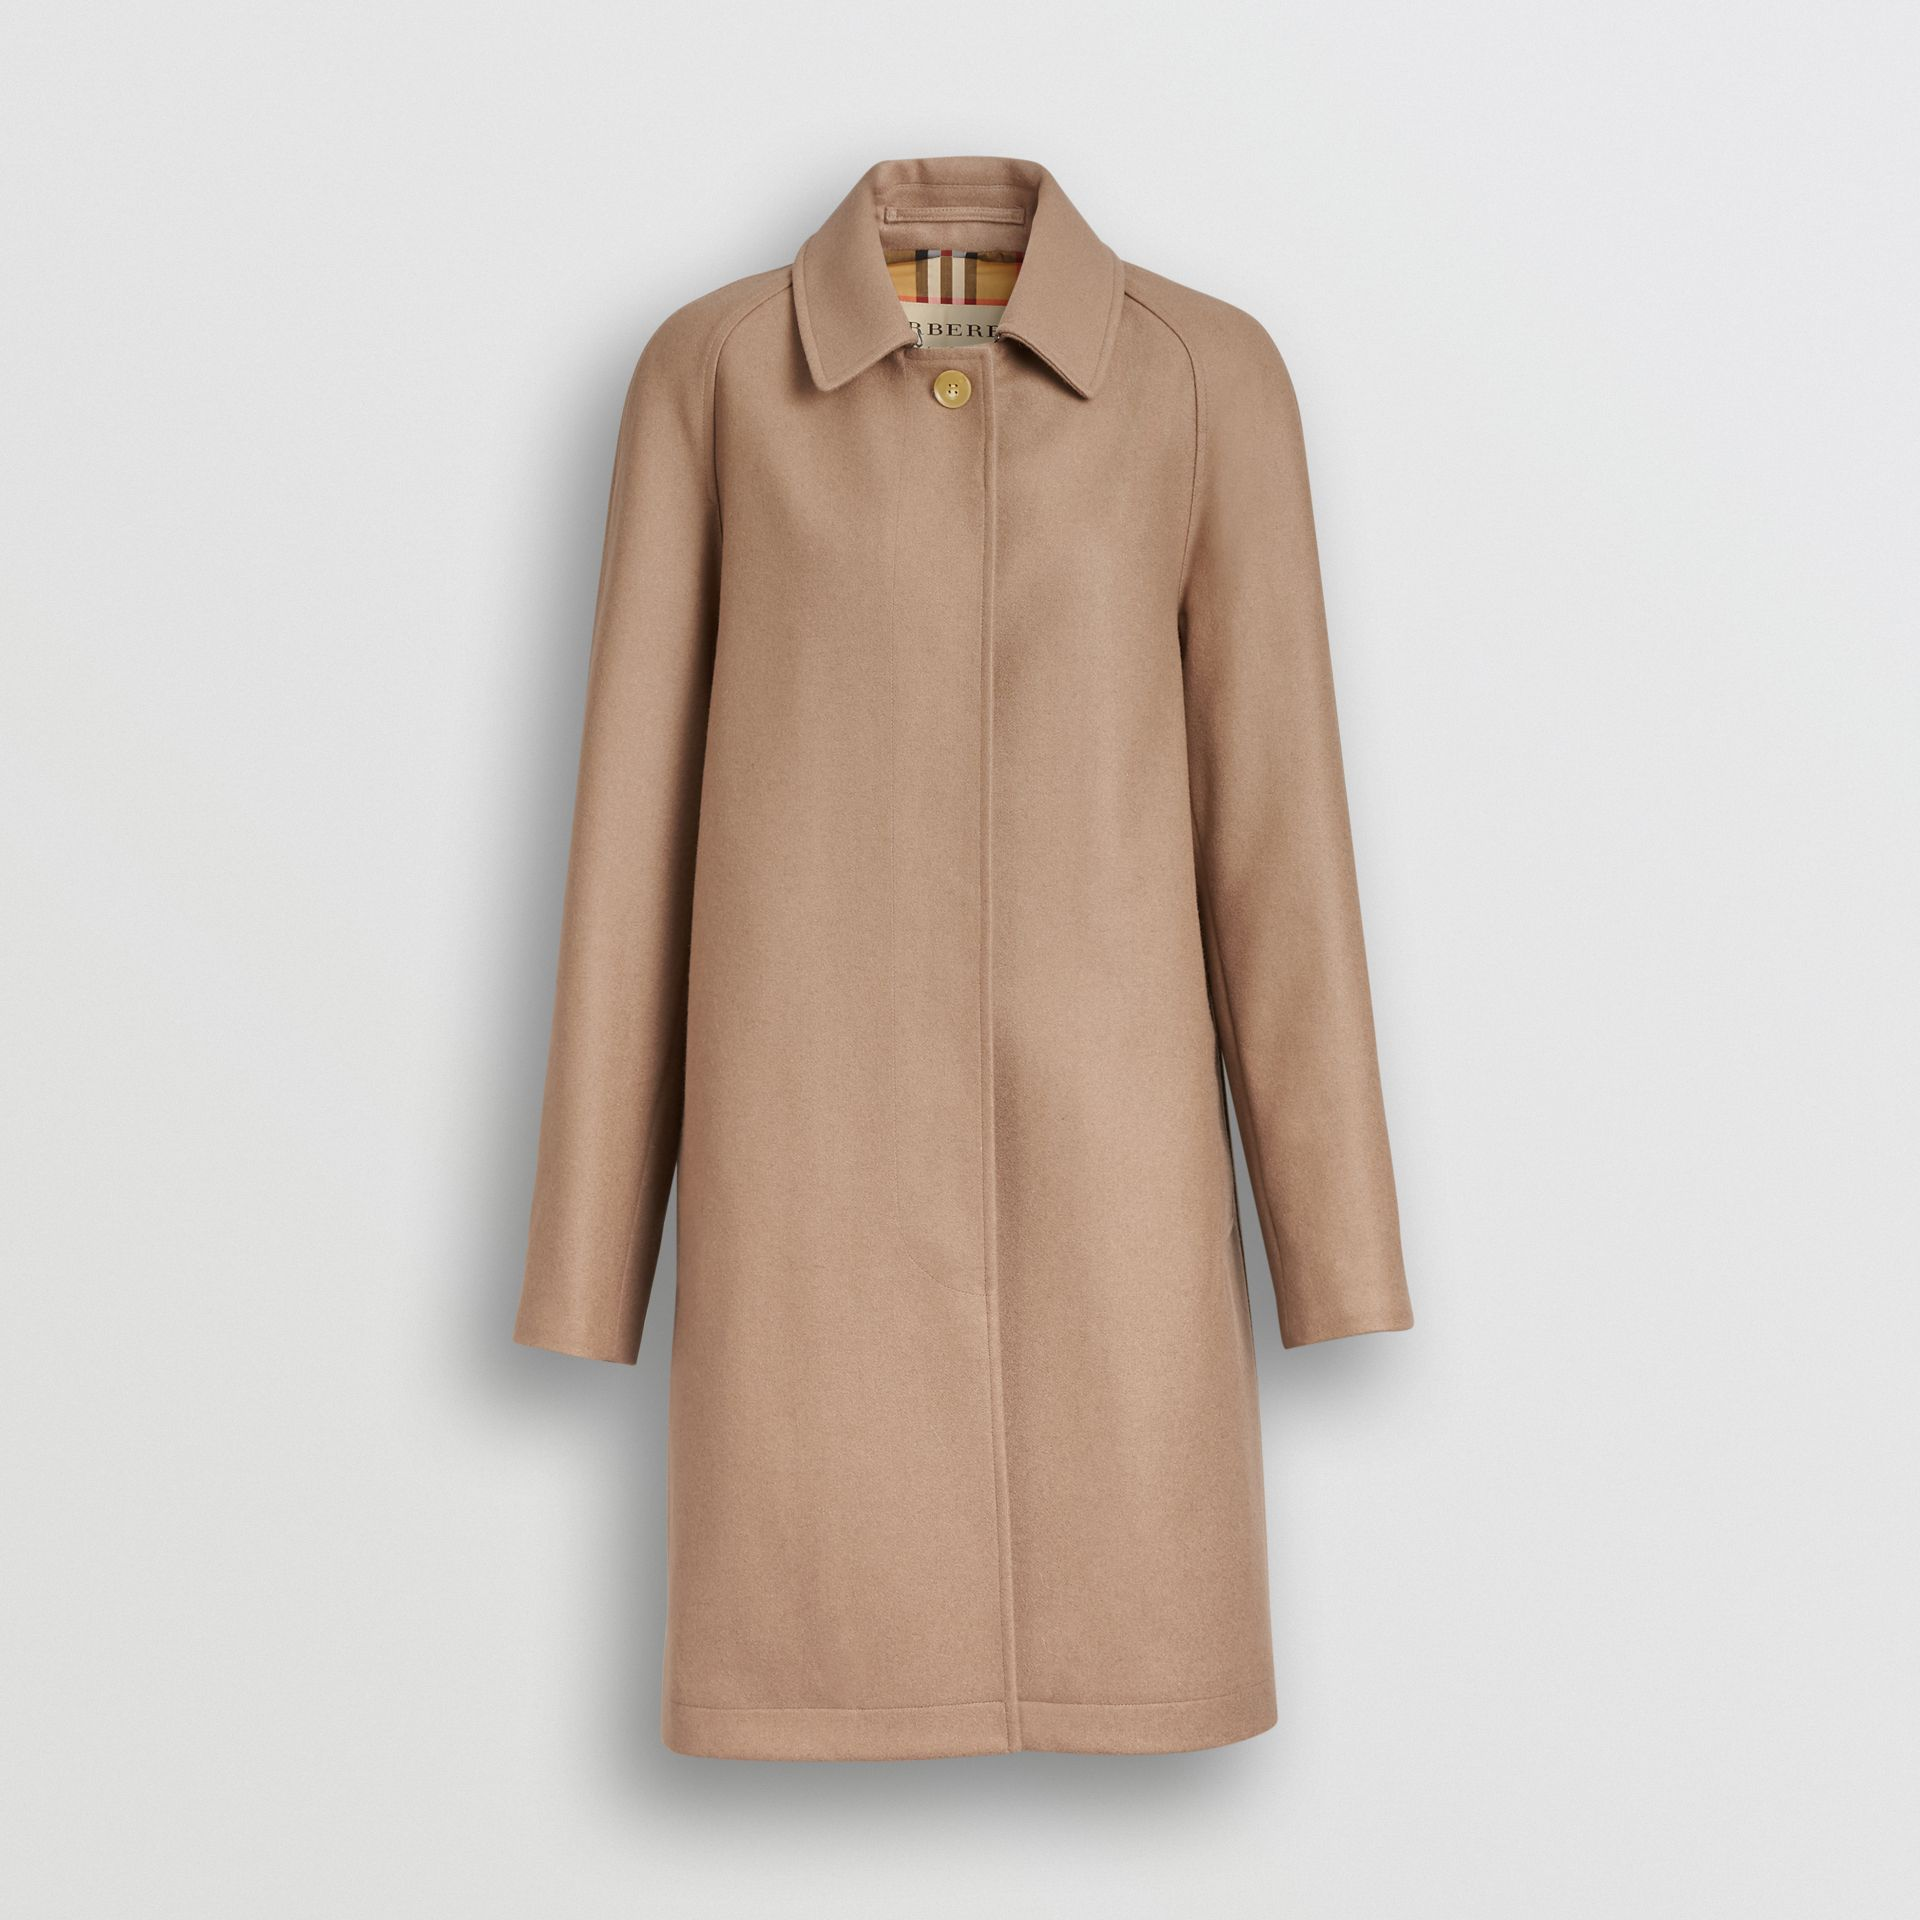 Cashmere Car Coat in Camel - Women | Burberry Australia - gallery image 3